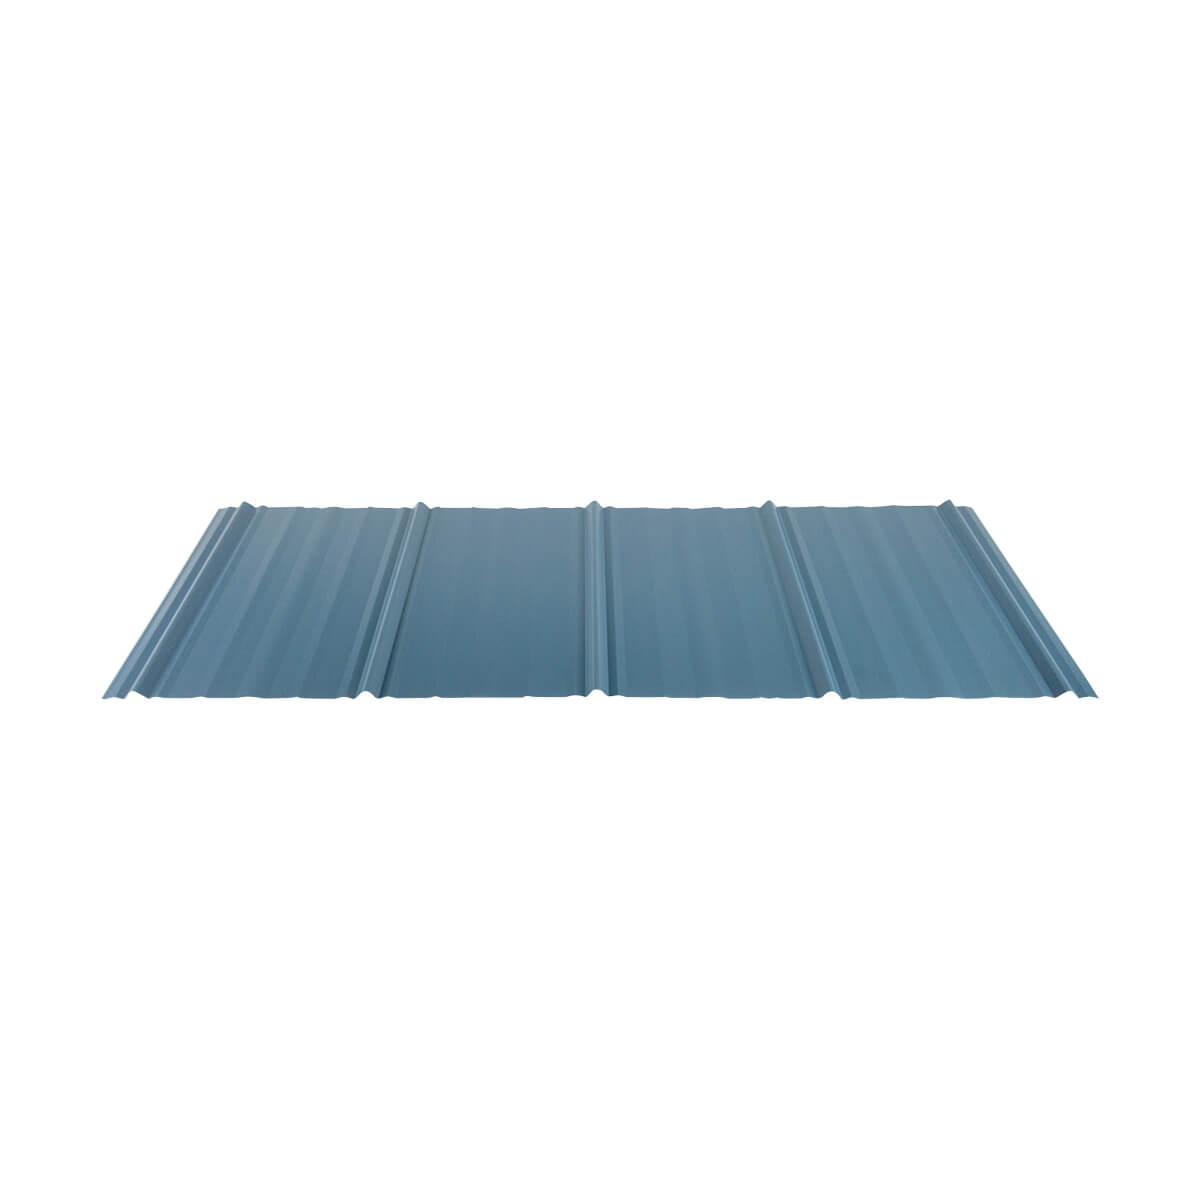 "WeatherShield 1 Metal Sheets or Panels - 32"" x 12'"